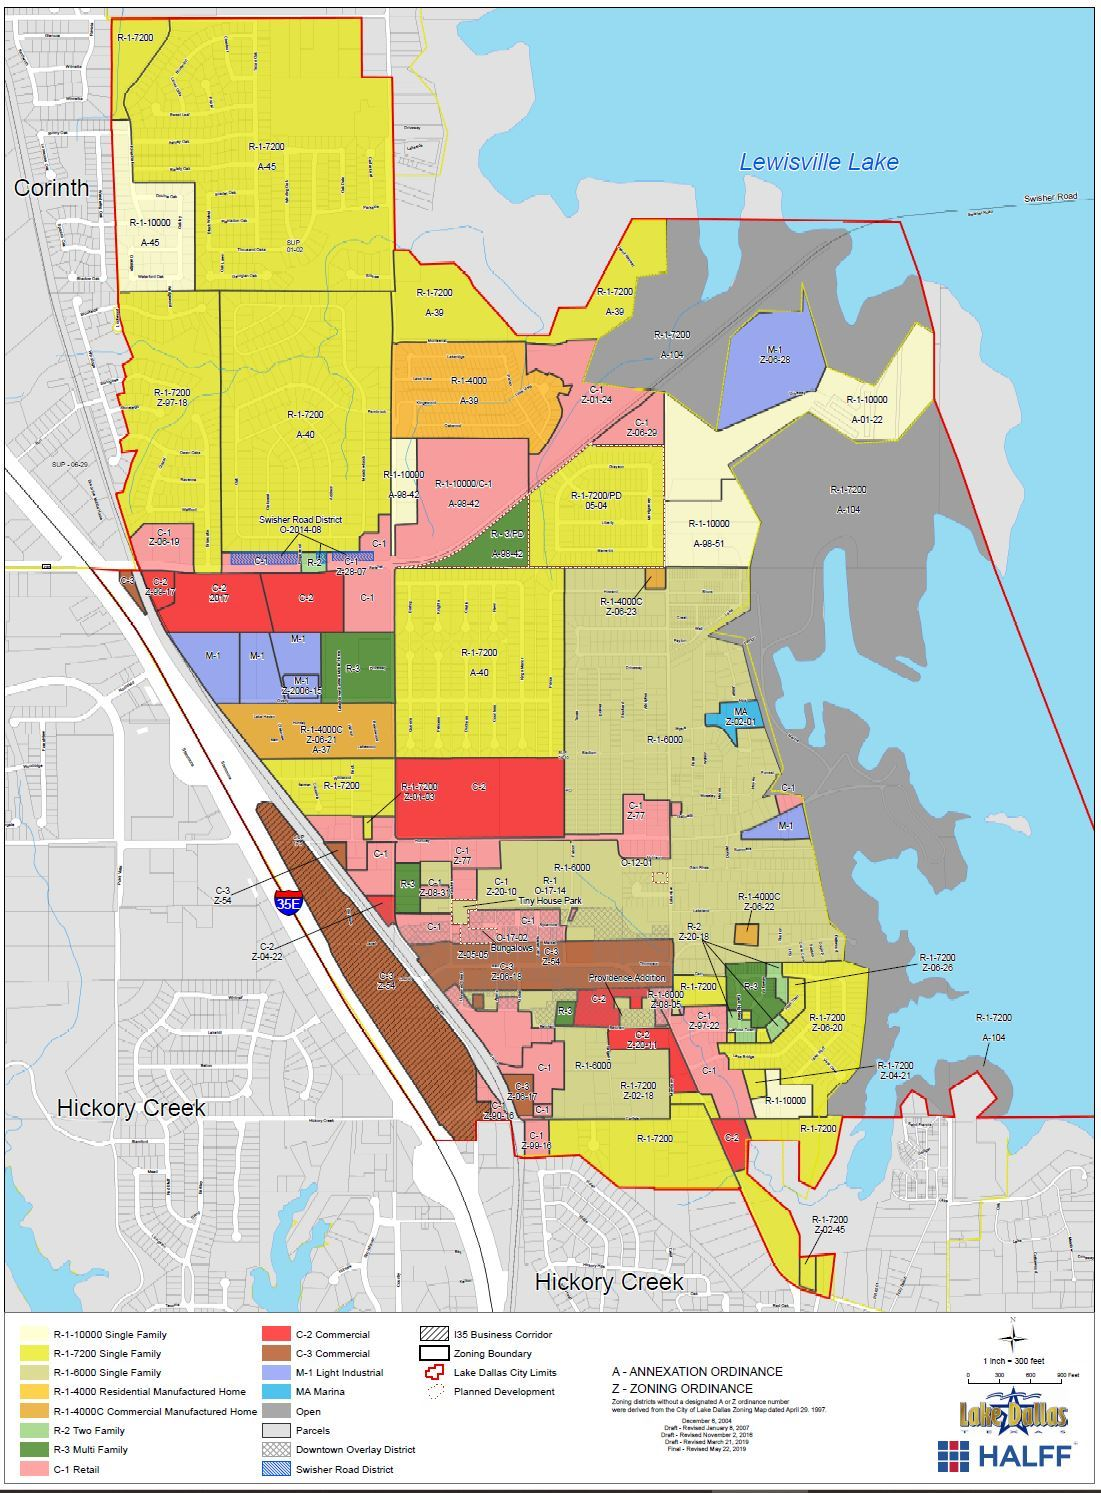 2019 Zoning Map Opens in new window